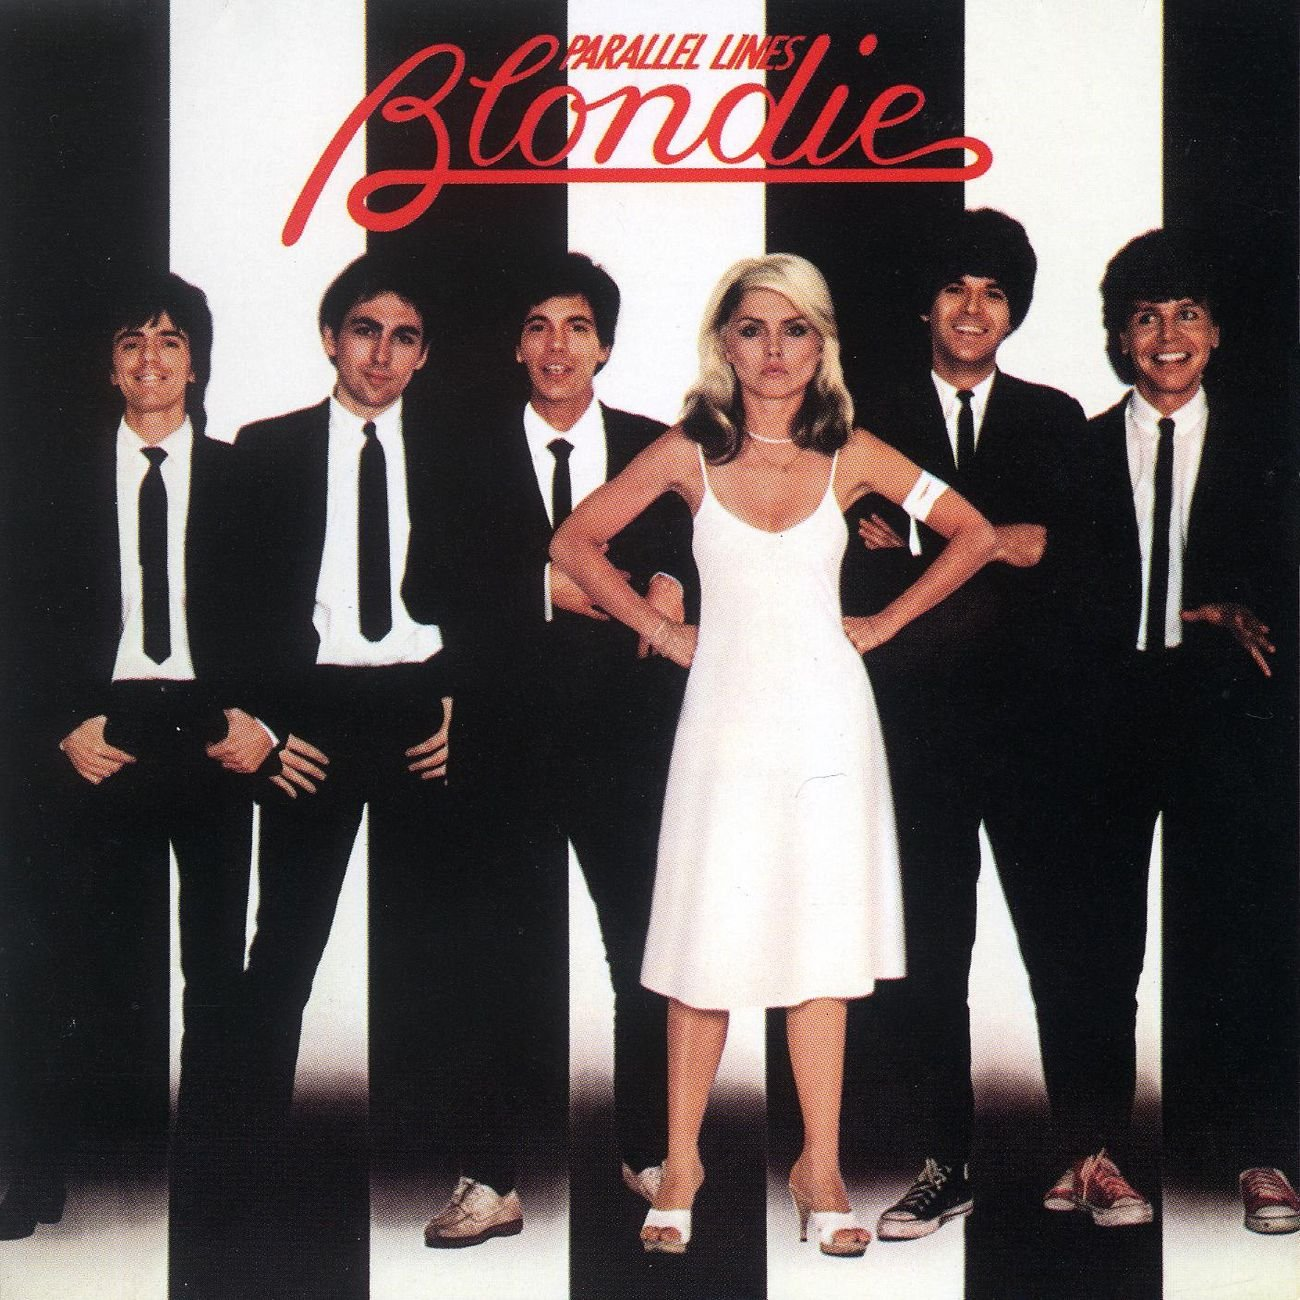 BLONDIE - PARALLEL LINES - VINYL LP - Wah Wah Records